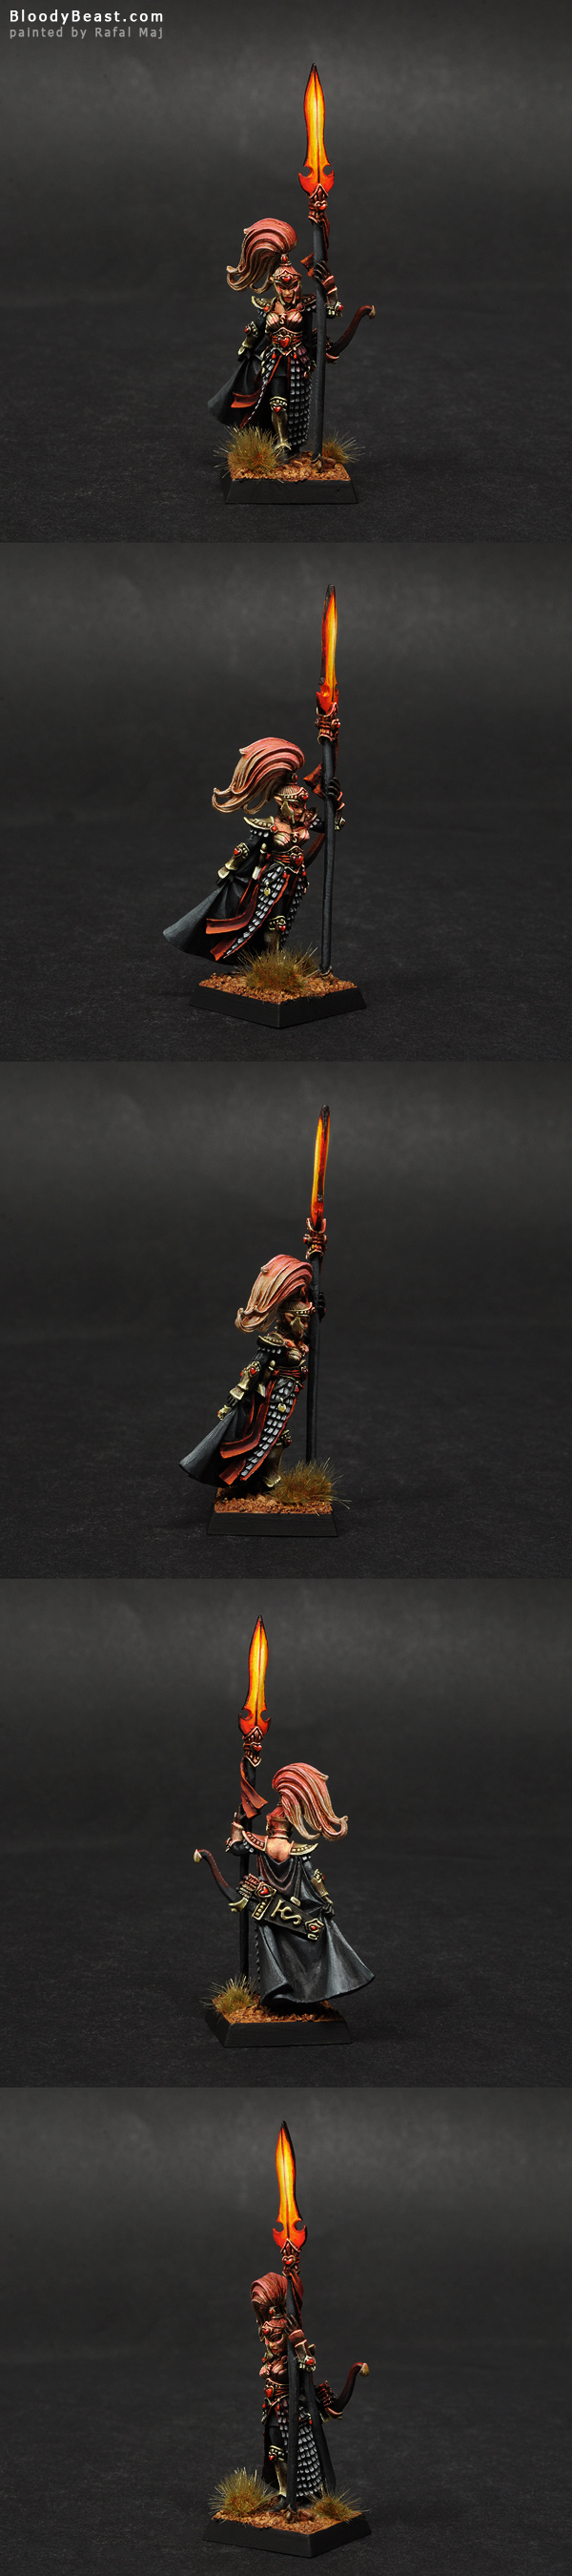 High Elf Handmaiden Of The Everqueen painted by Rafal Maj (BloodyBeast.com)